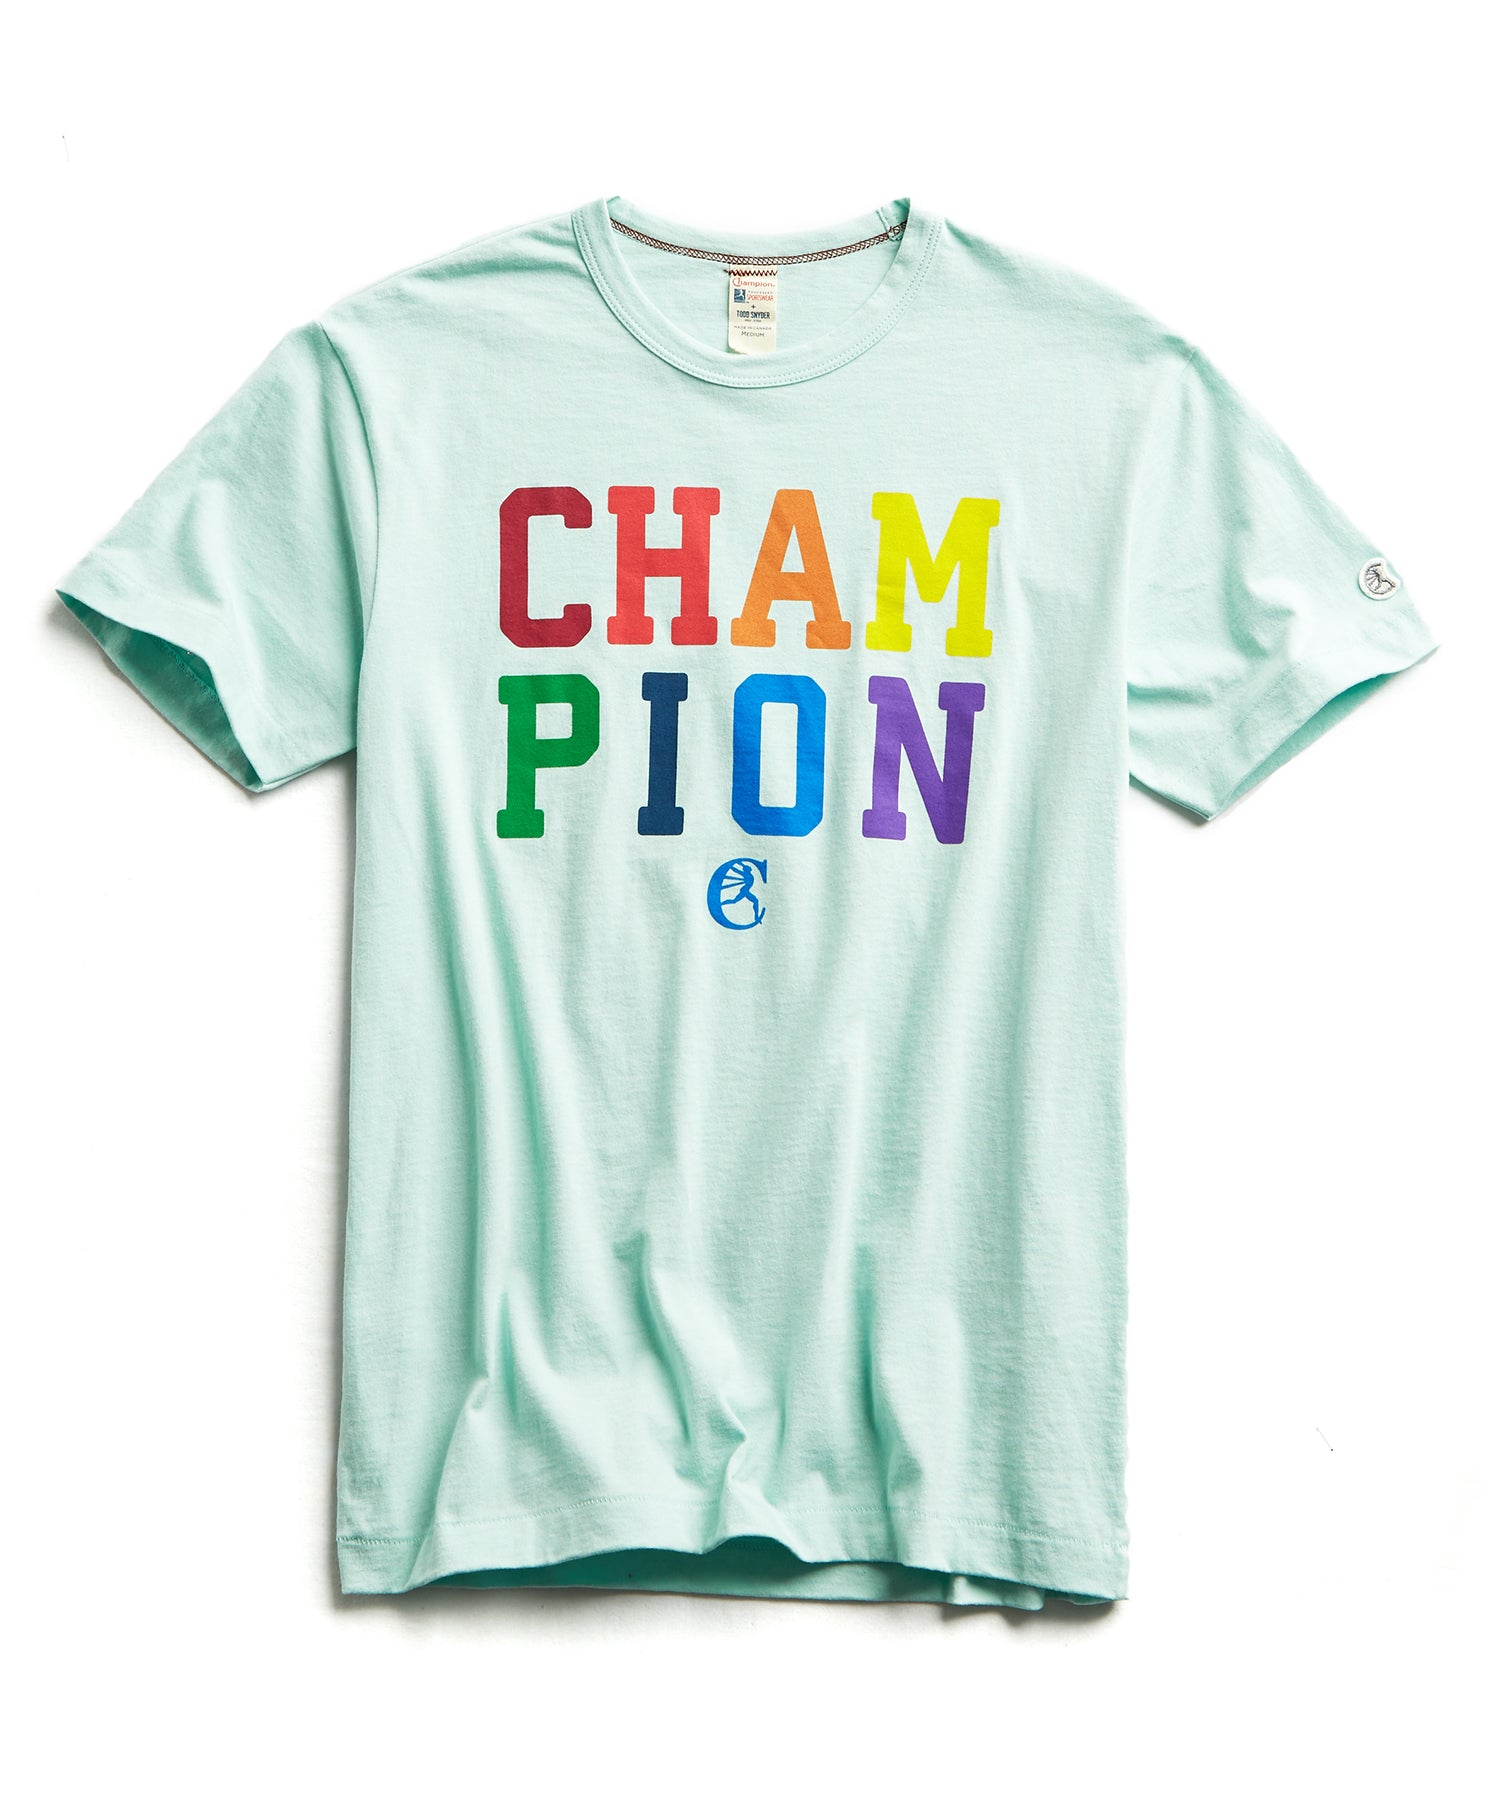 Champion Pride Graphic Tee in Minty Green